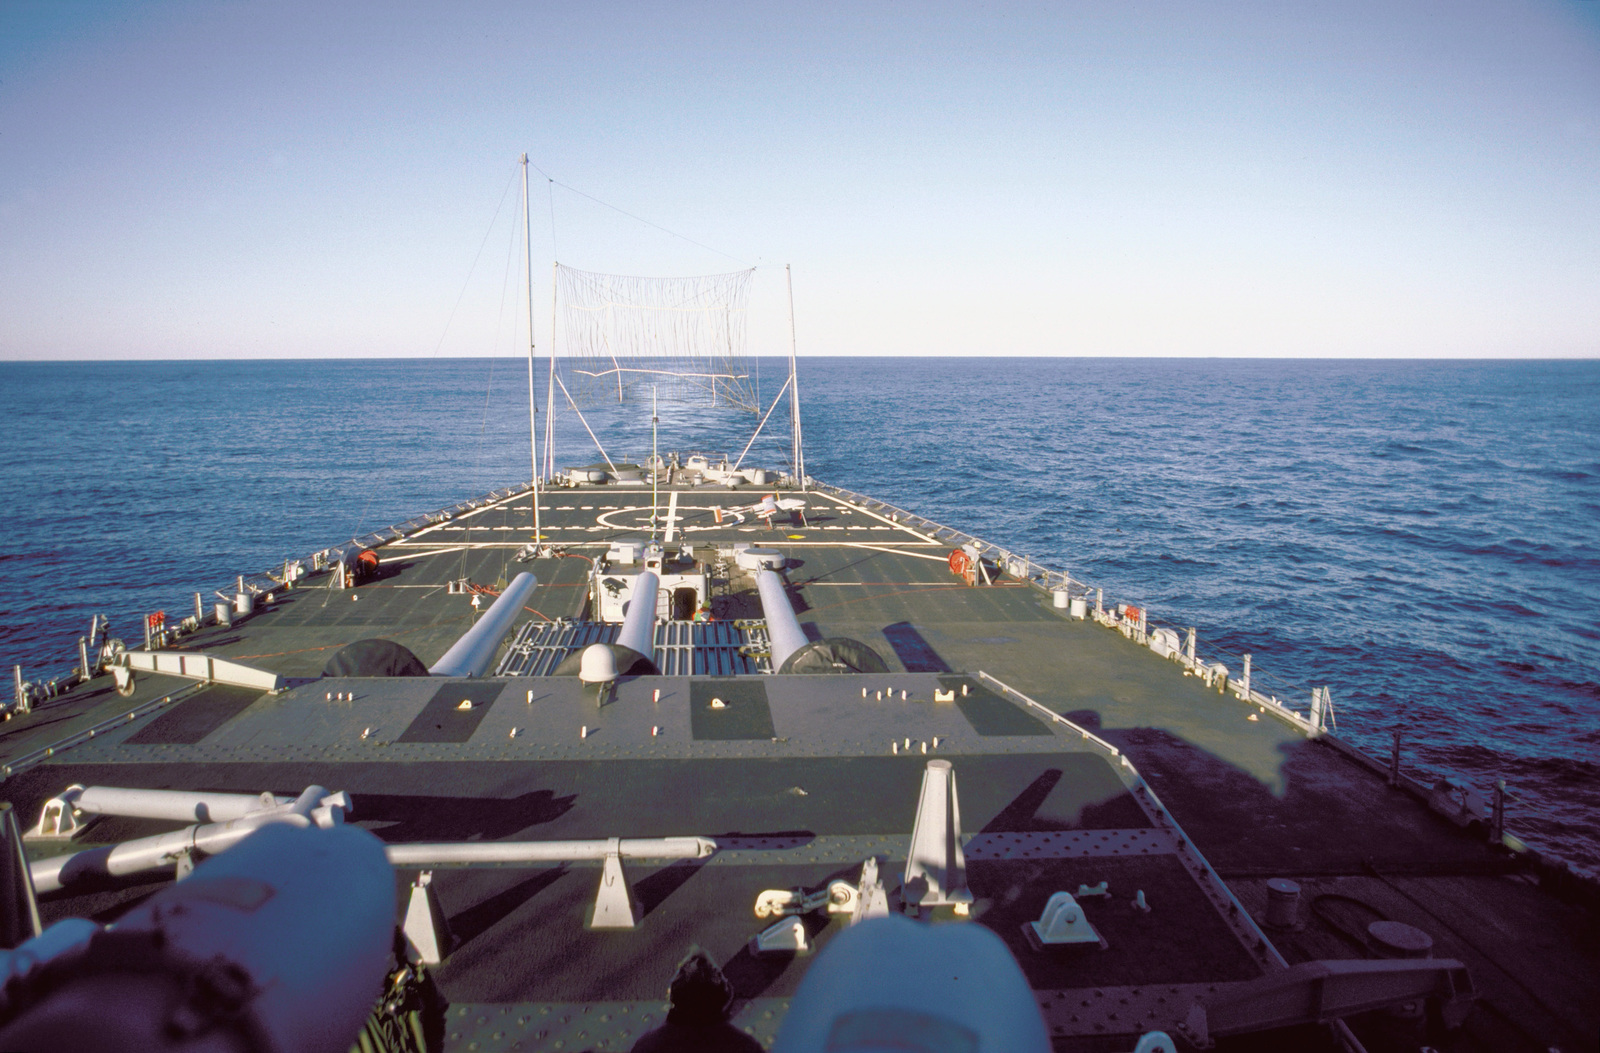 A view of the stern of the battleship USS IOWA (BB-61) with a Pioneer I remotely-piloted vehicle (RPV) in launching position and a recovery net erected on the ship's stern. The RPV, which carries a stabilized television camera and a laser designator, is being tested aboard the IOWA as a basic gunfire support system with over-the-horizon targeting and reconnaissance capabilities. The system may be operated out to a range of 110 miles from the battleship surface group and has an endurance of eight hours